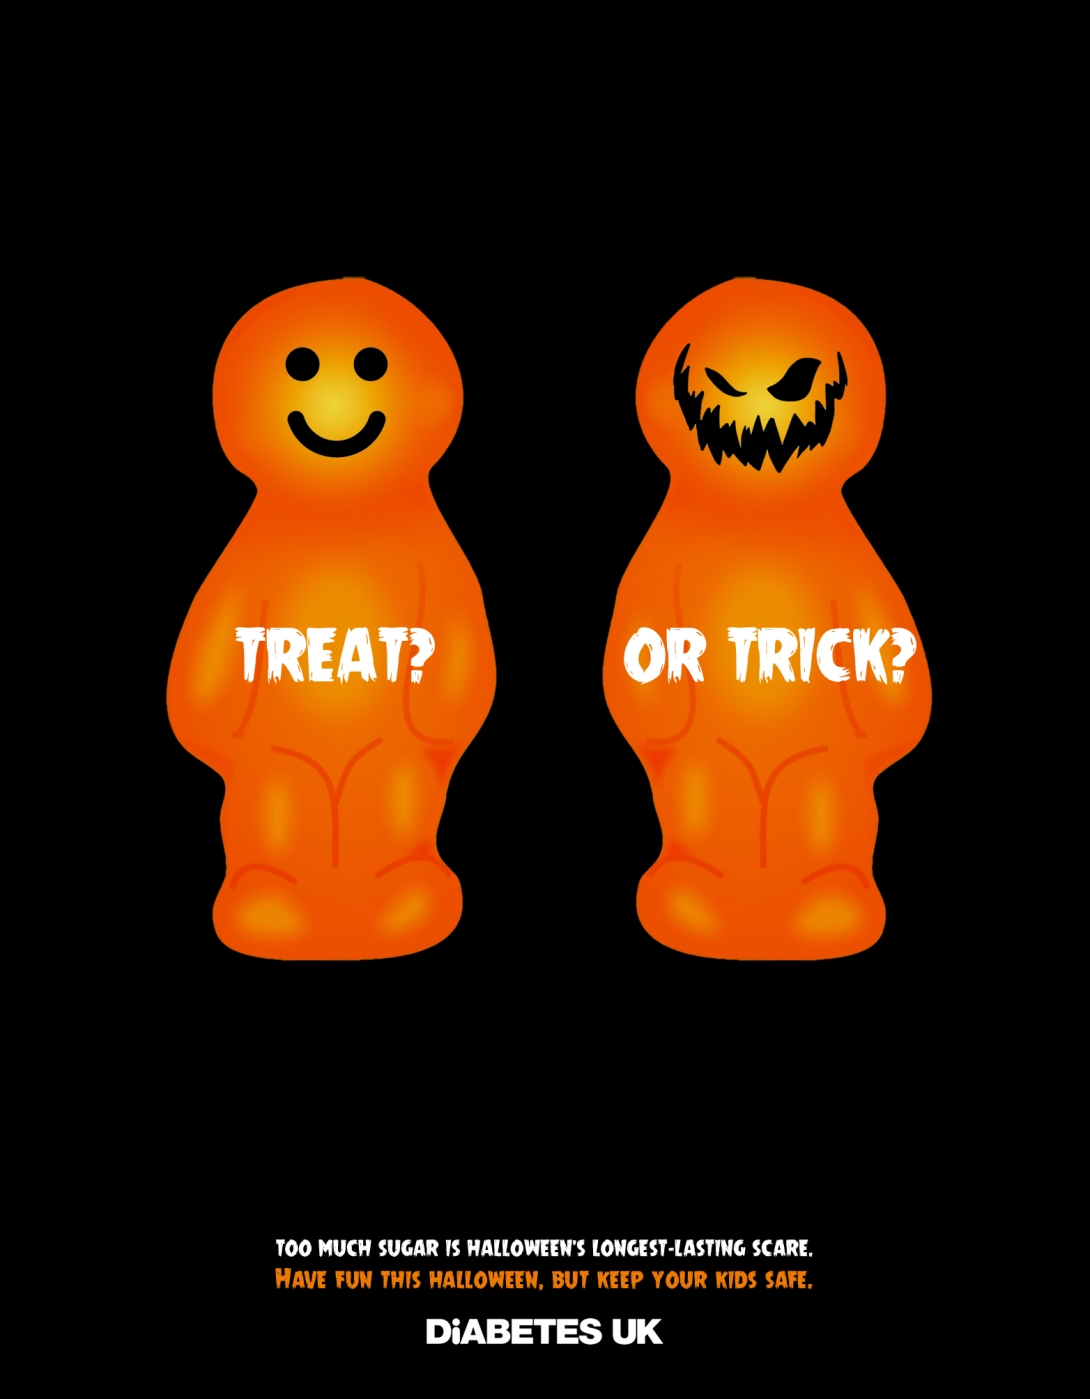 Halloween advertising idea for a diabetes charity